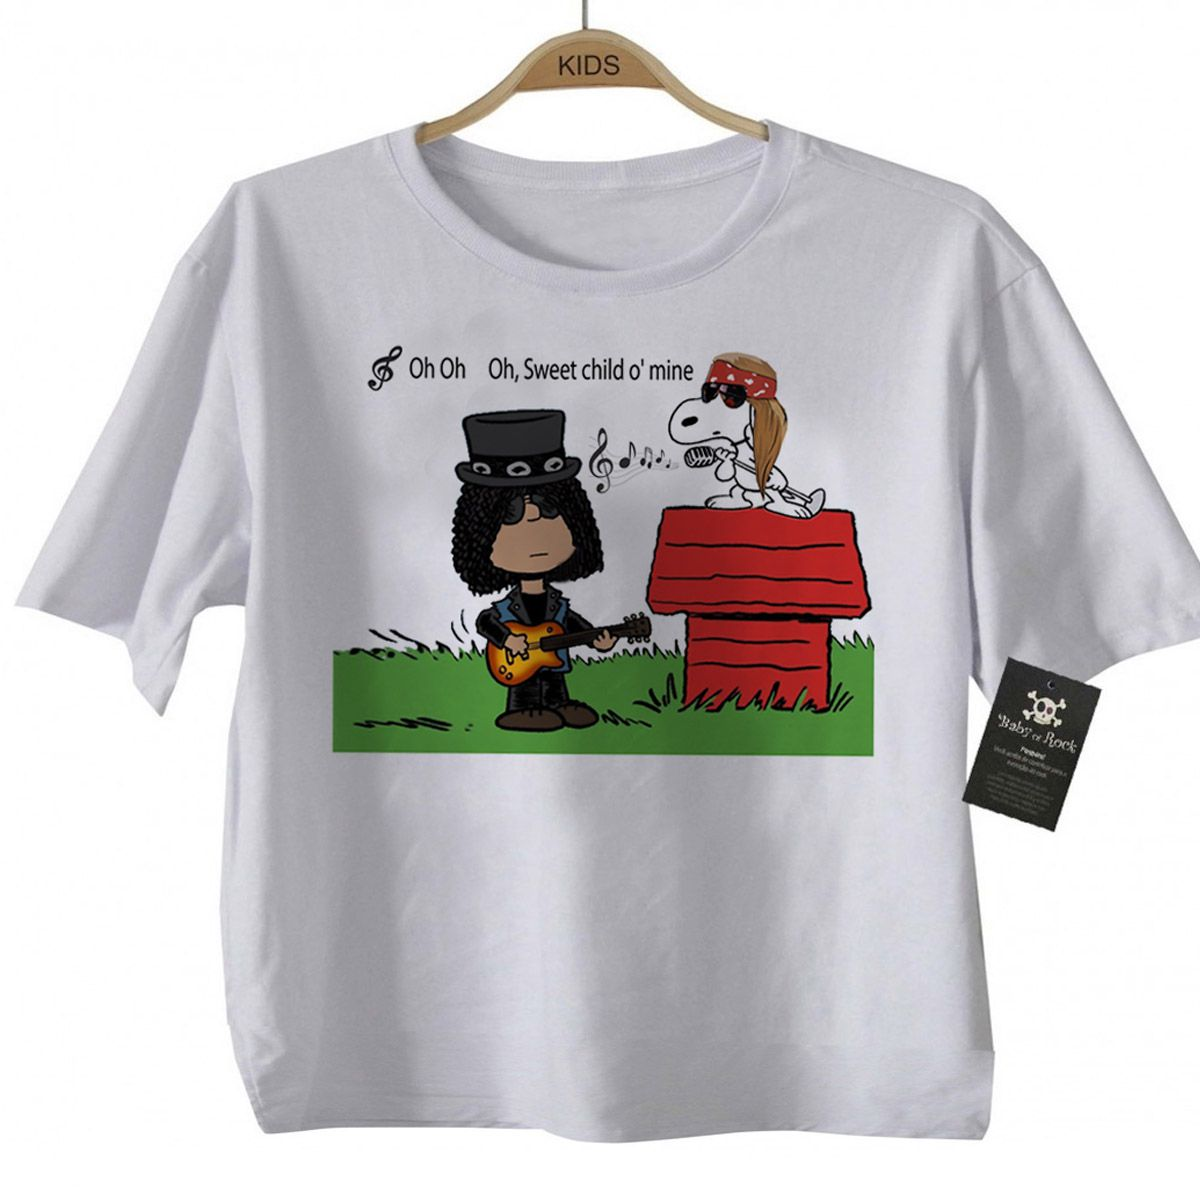 Camiseta Infantil Bebê Guns N Roses Snoopy - White  - Baby Monster S/A